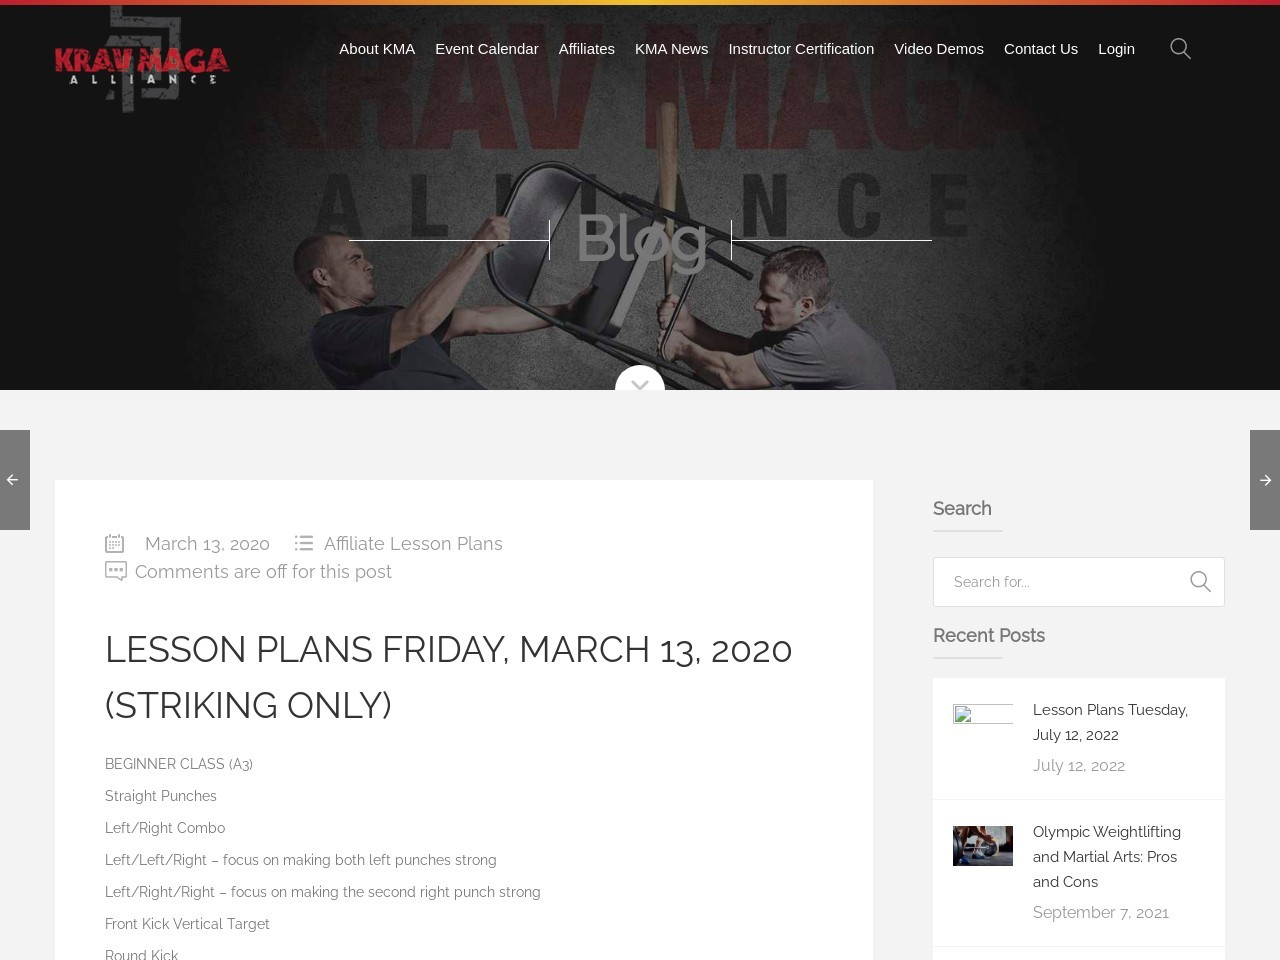 Lesson Plans Friday, March 13, 2020 (Striking Only)